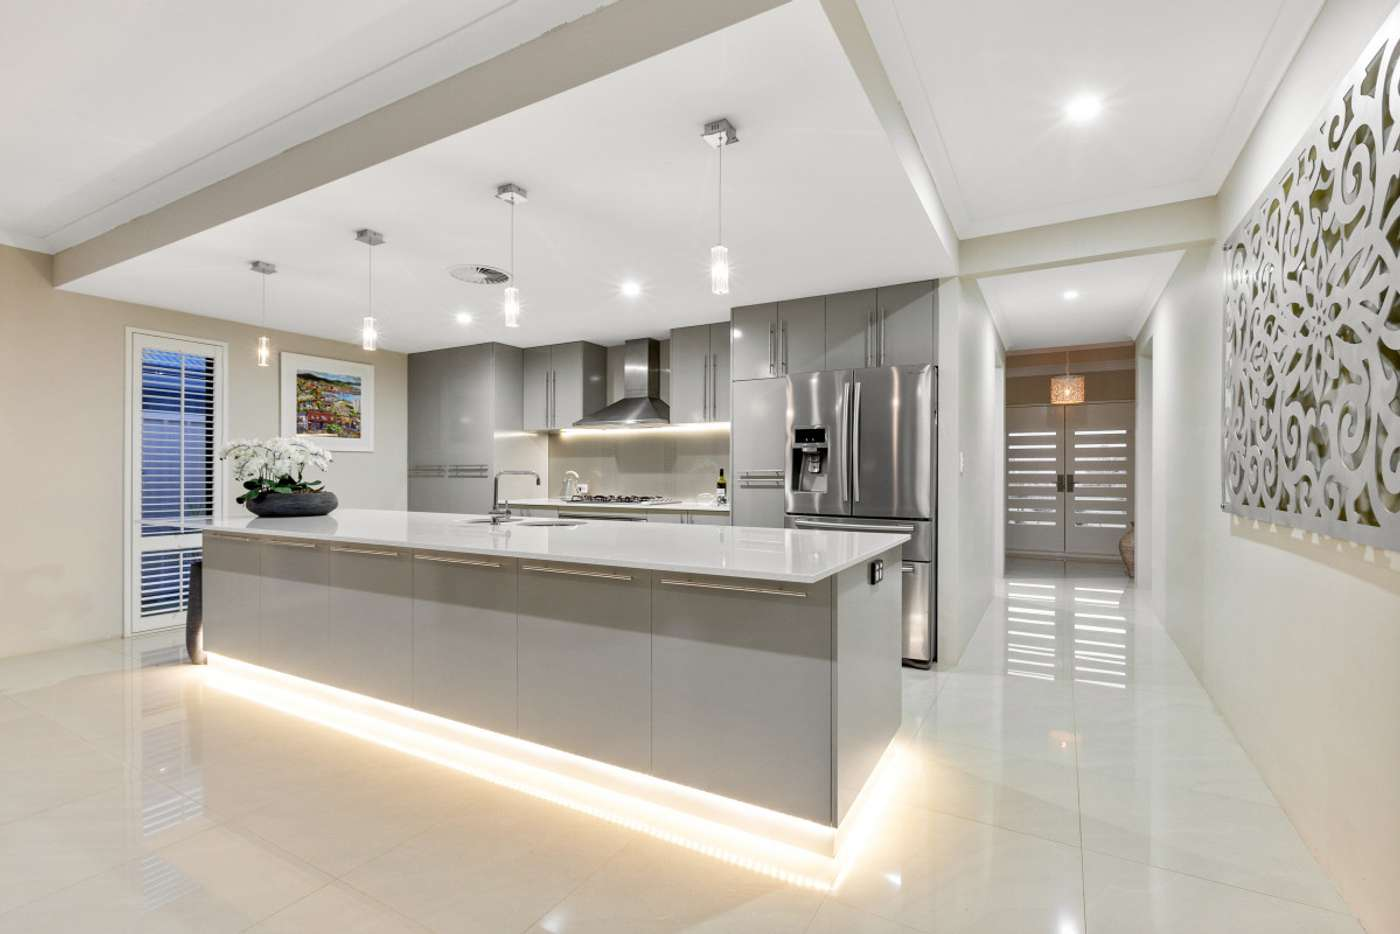 Fifth view of Homely house listing, 15 Warrior Pass, Madora Bay WA 6210